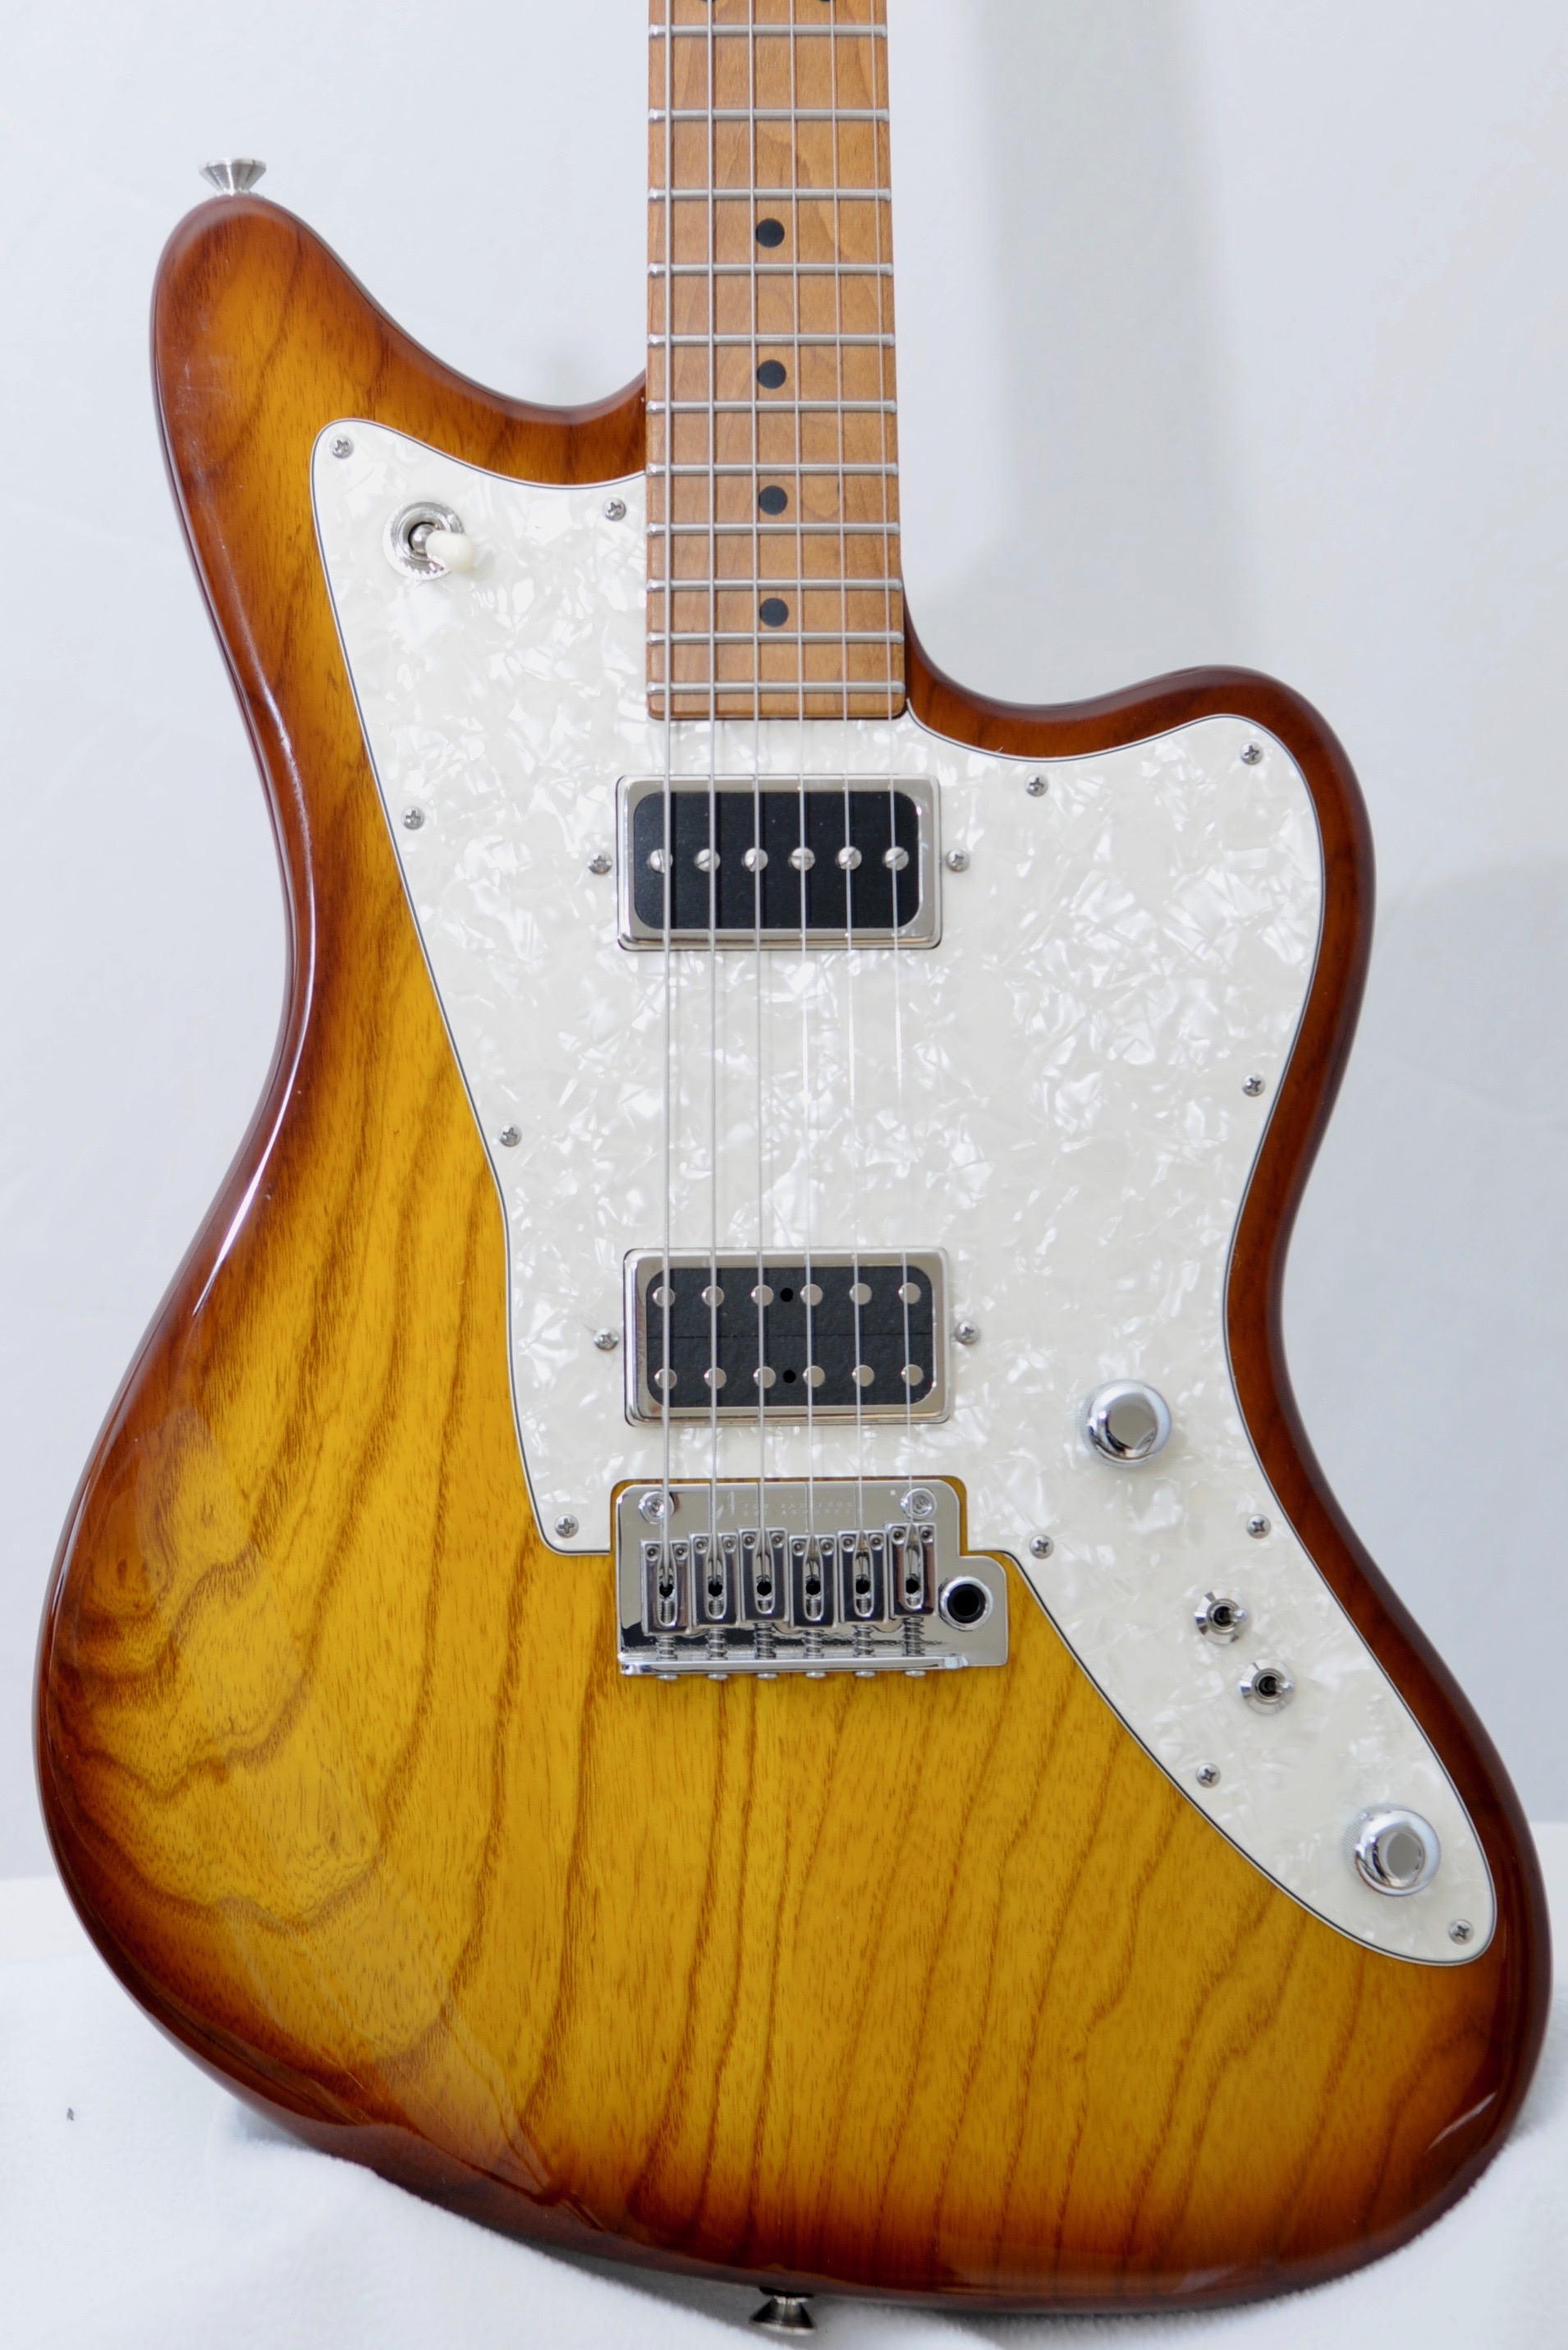 2019 Tom Anderson RAVEN – Smells NEW